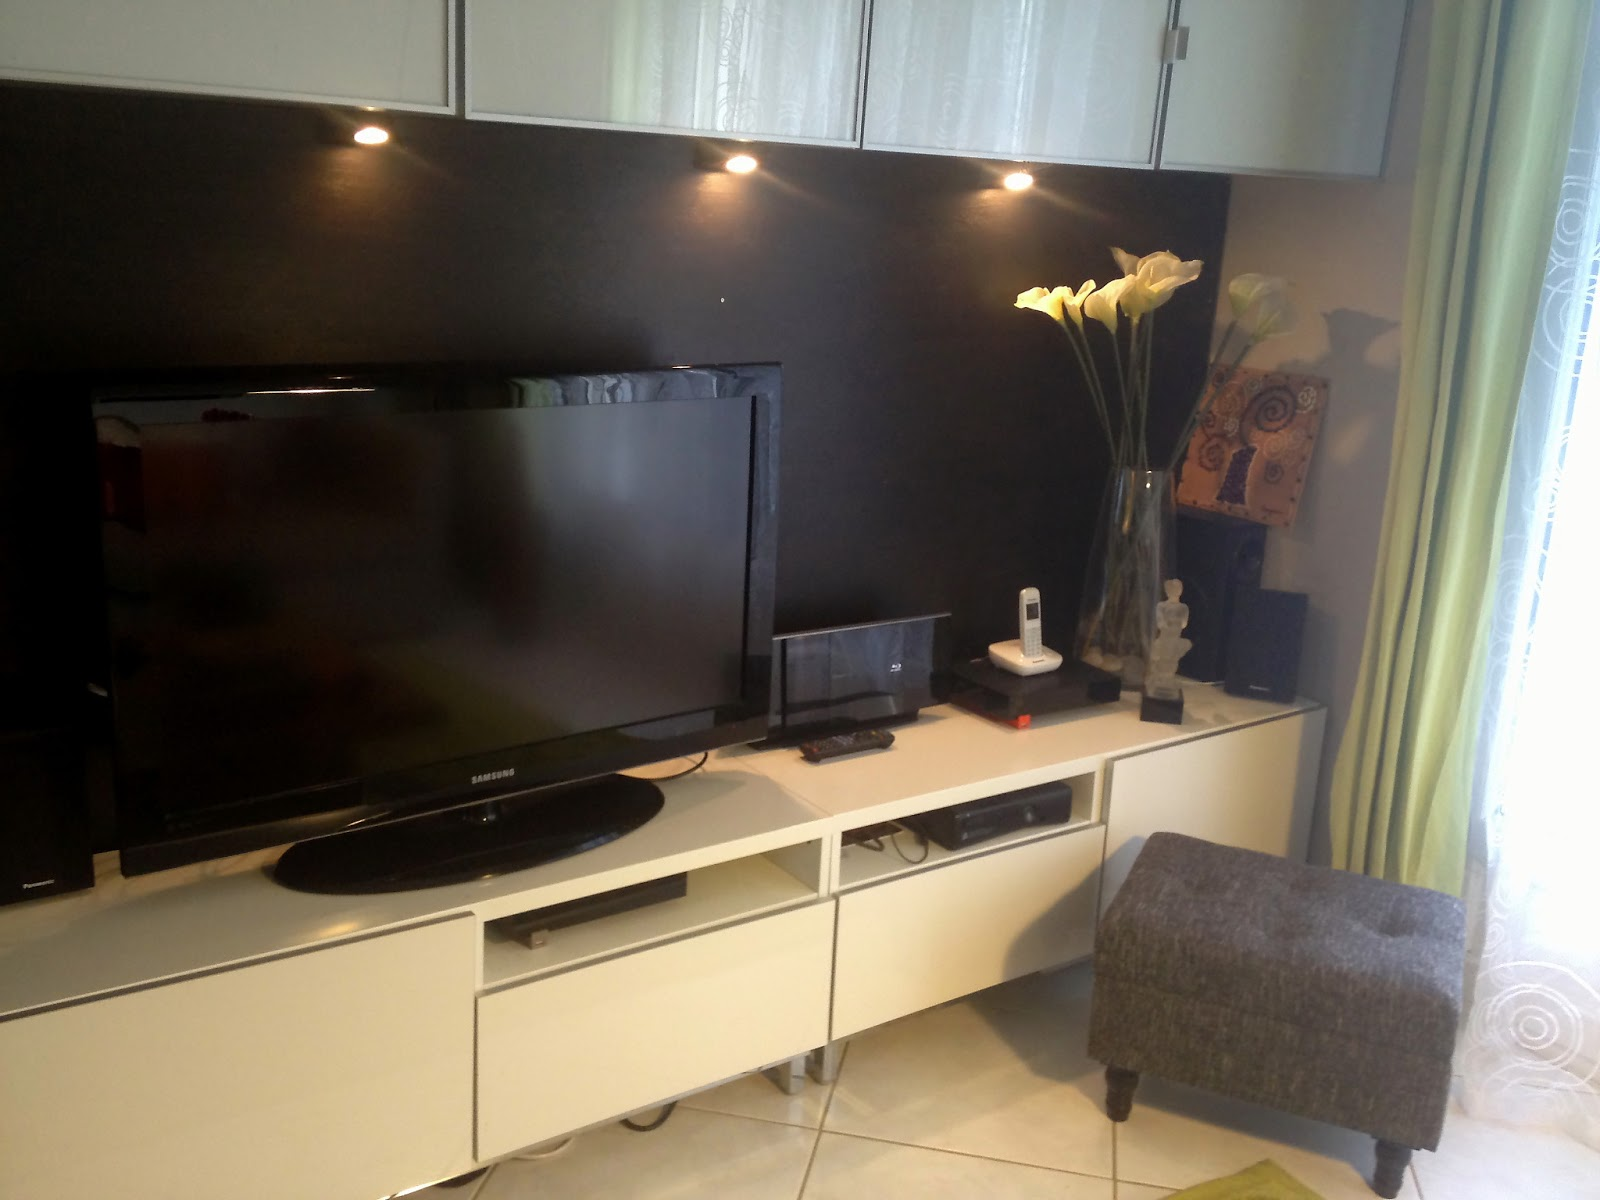 Solutions Pour Cacher La T L D Conome # Comment Accrocher Les Planches A Tv Au Mur